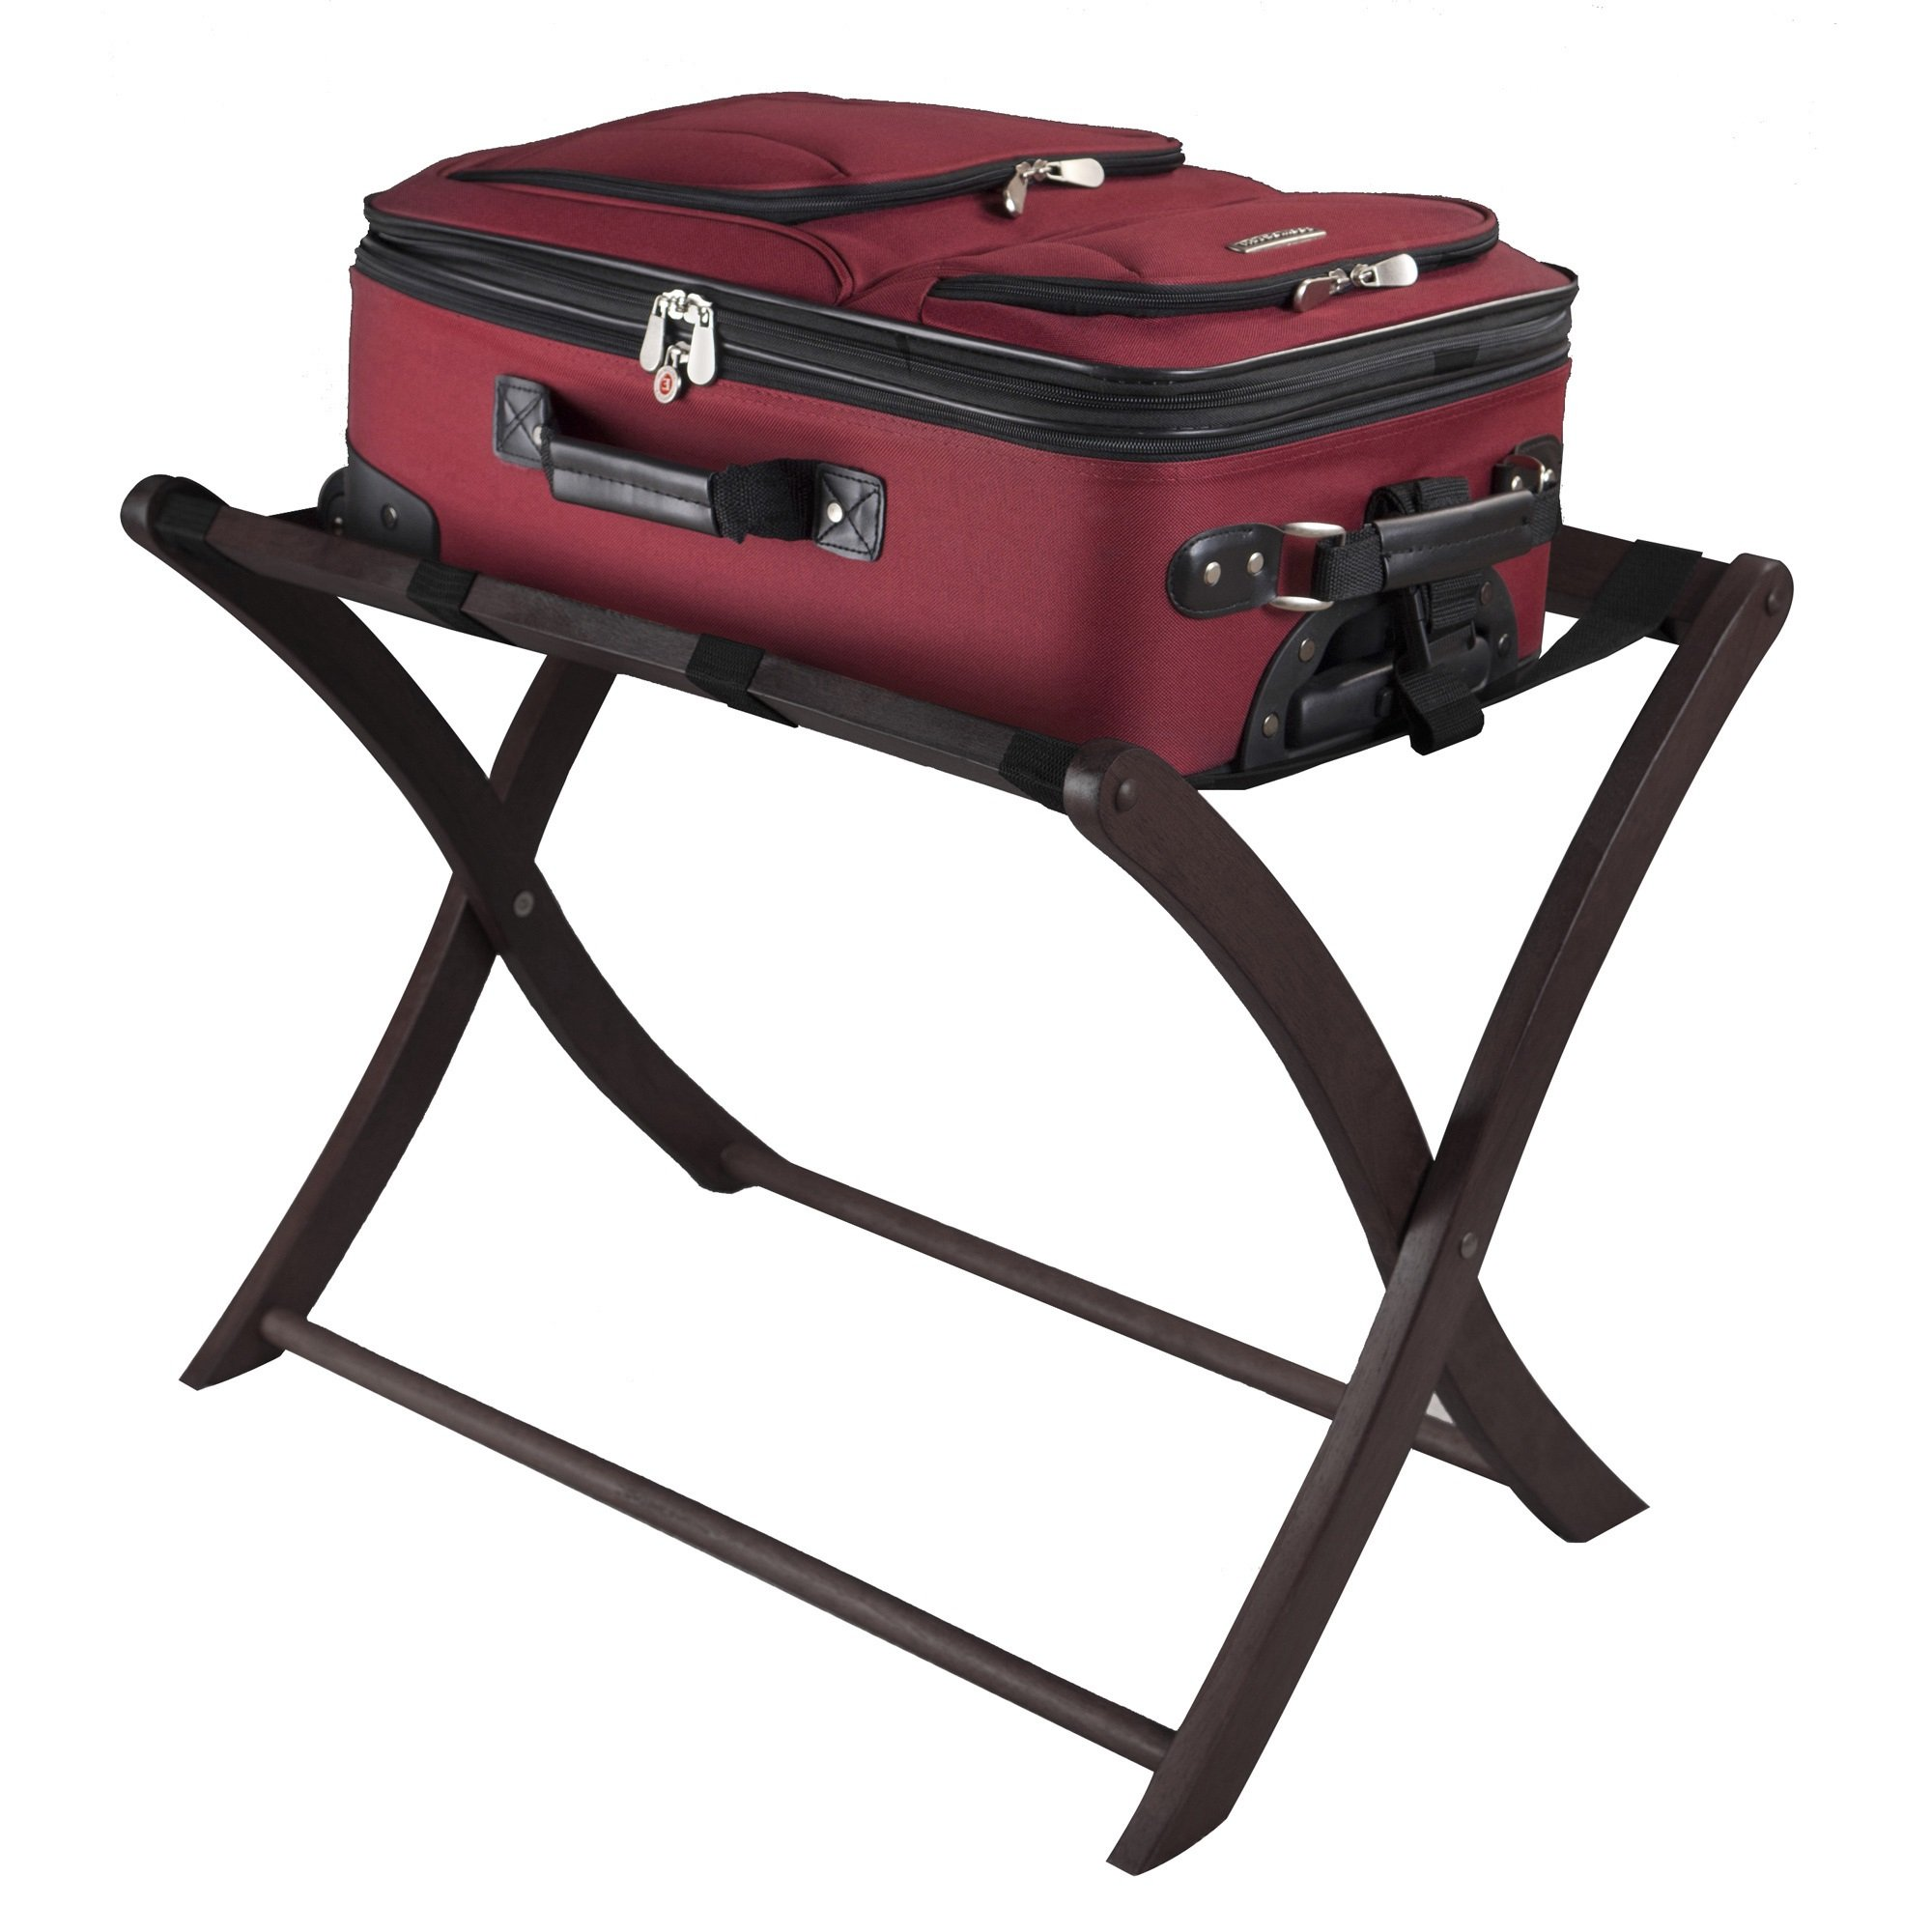 Curved Leg Luggage Rack Brown Espresso Wood, Suitcase Holder For Walk In  Closet And Entryway